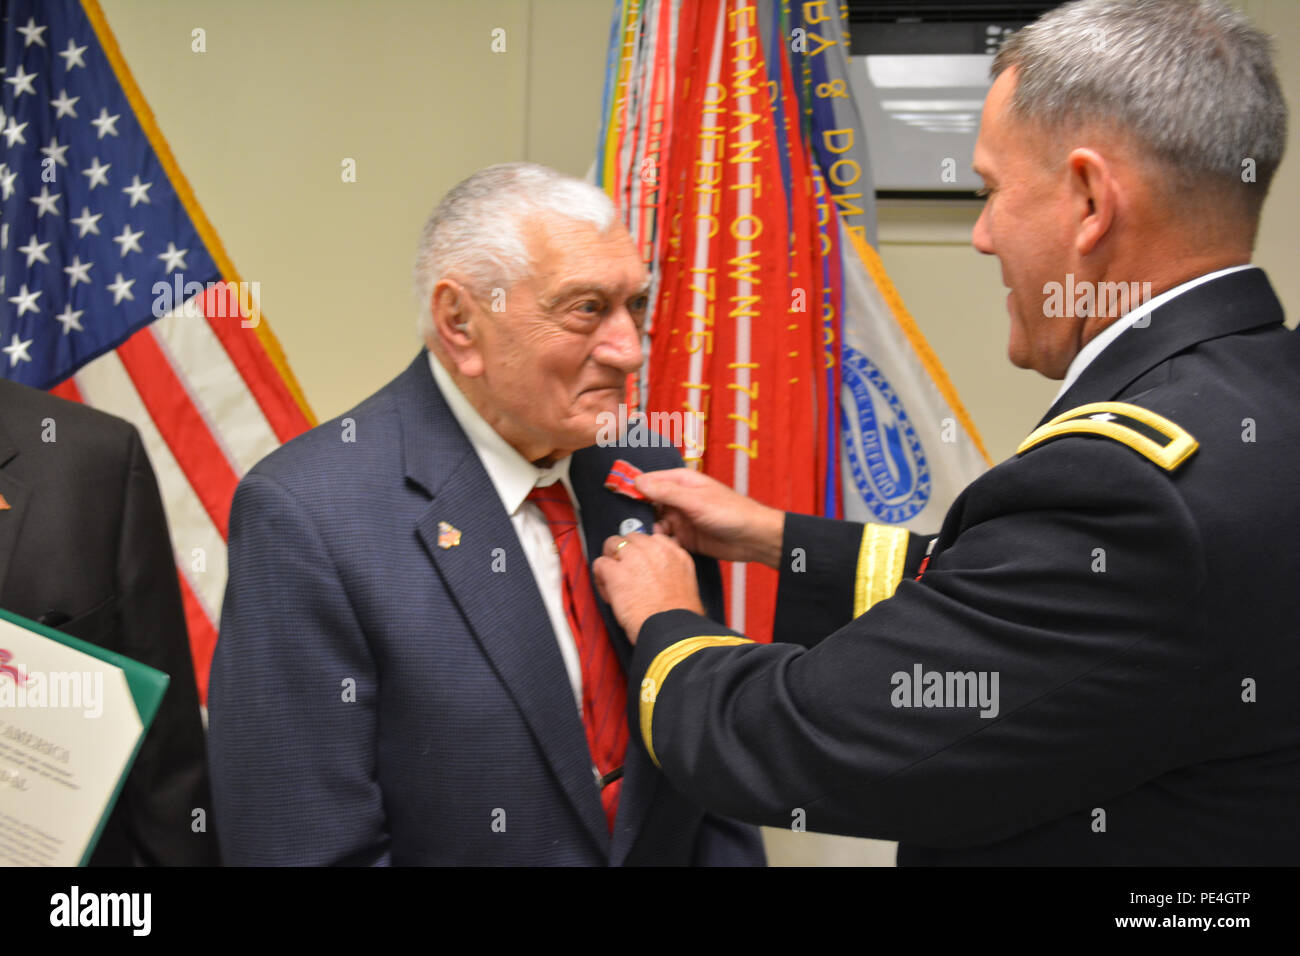 Brig. Gen. Steven Ainsworth, commander 94th Training Division, awards the Bronze Star medal to WWII veteran Technician 4th Class, retired, Vincenzo Geramita during an intimate ceremony filled with family, friends and service members at Fort Dix, N.J., Sept. 12, 2015. Geramita and Lt. Col., retired, Andrew Cella each received the medal after 70 years because after they earned their Combat Infantry Badges for the fighting they experienced in Europe, neither one knew that a 1947 general order made them eligible for the Bronze Star since they had earned their CIBs between 1941 and 1945. - Stock Image